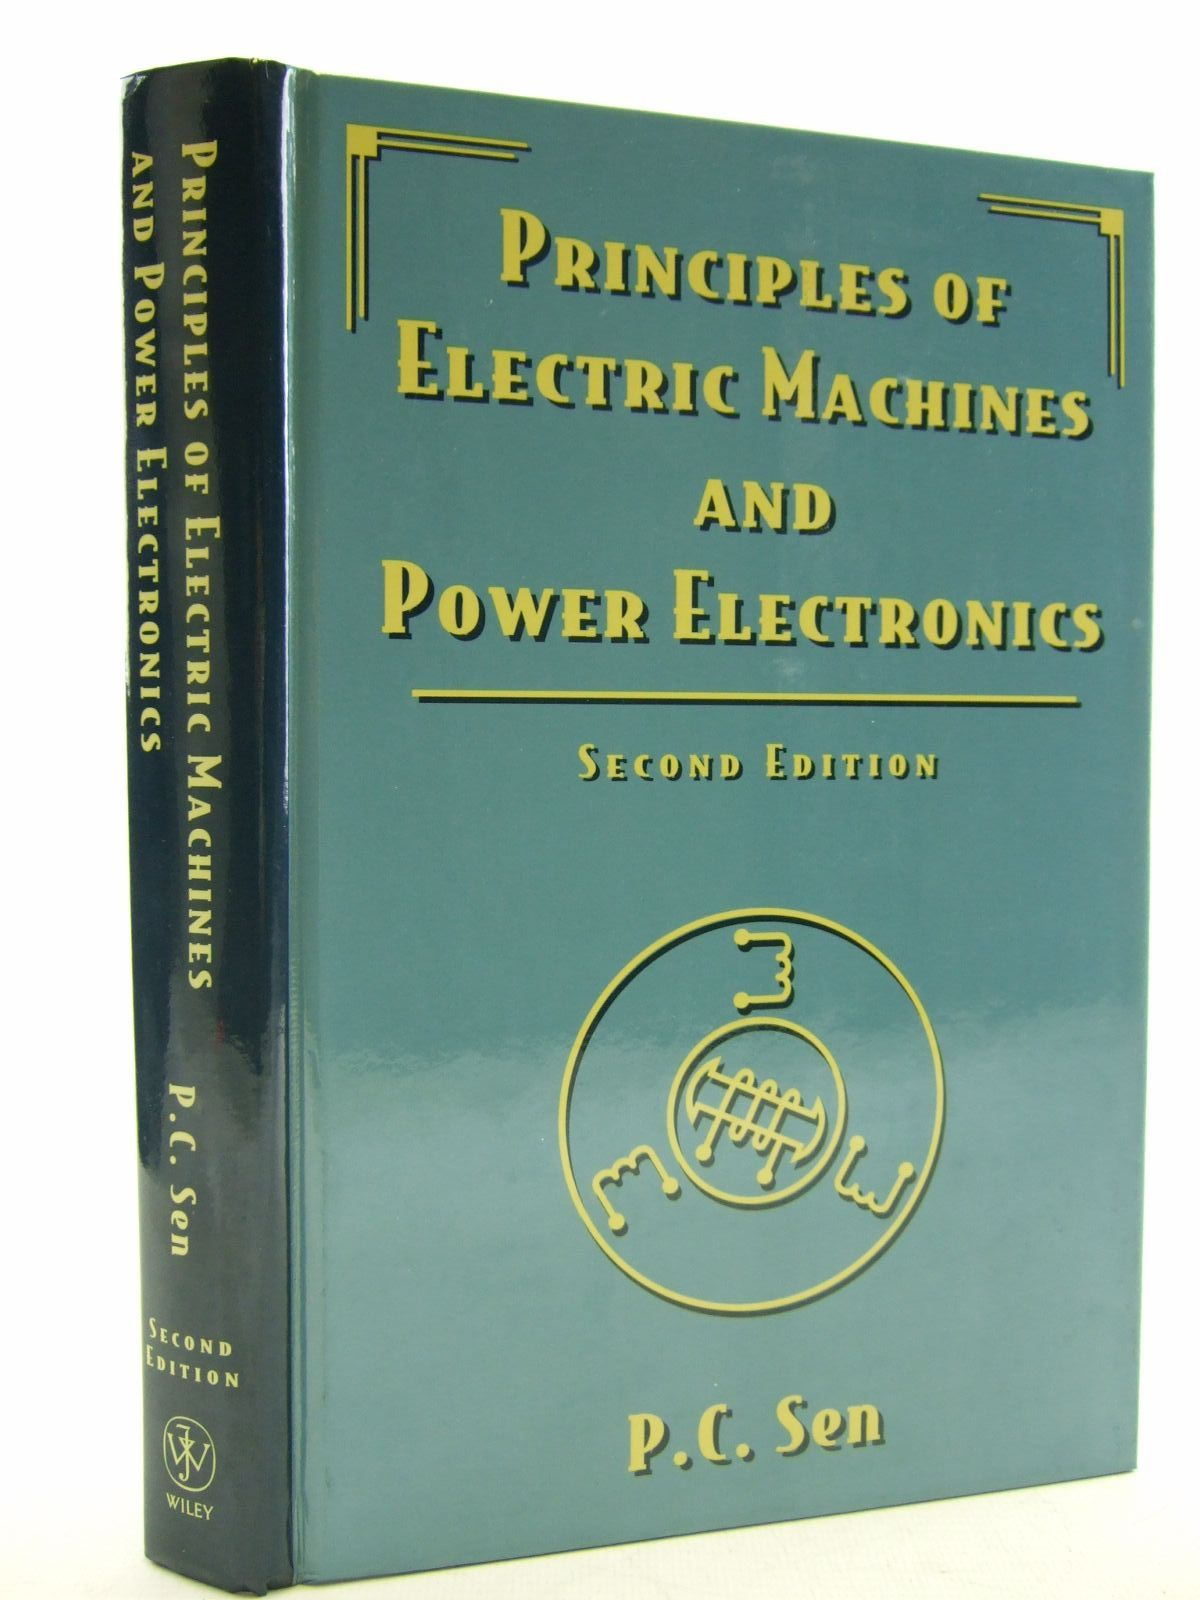 Photo of PRINCIPLES OF ELECTRIC MACHINES AND POWER ELECTRONICS written by Sen, P.C. published by John Wiley & Sons (STOCK CODE: 1206469)  for sale by Stella & Rose's Books